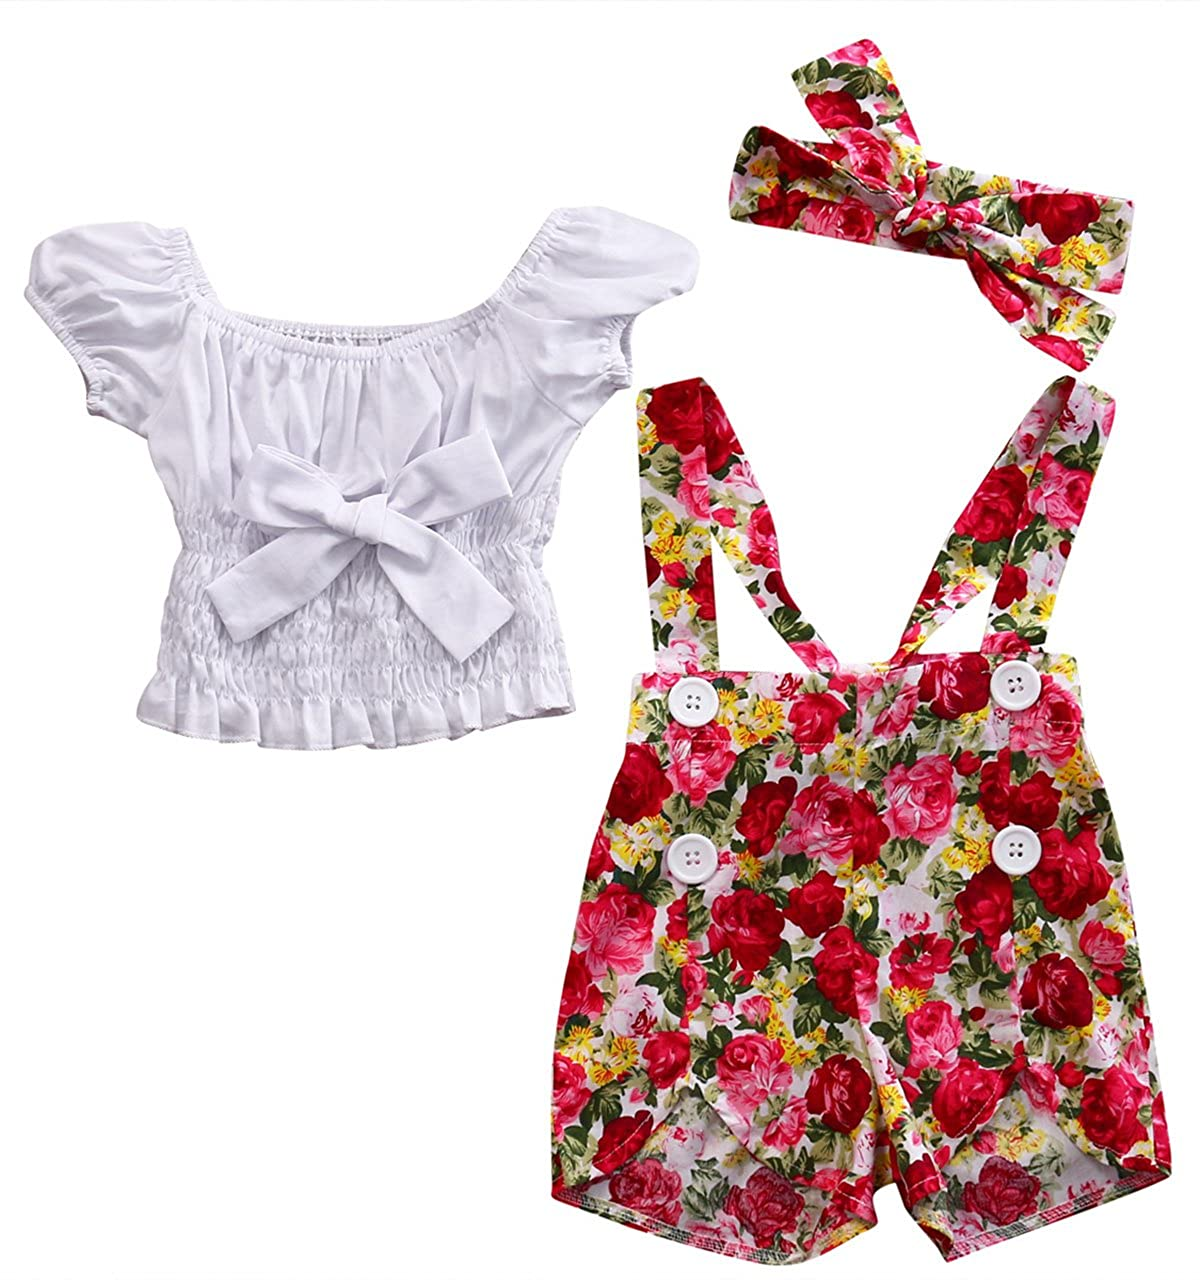 Baby Girl Off-Shoulder Bowknot Stretchy Tops+Floral Overall Shortall+Headband